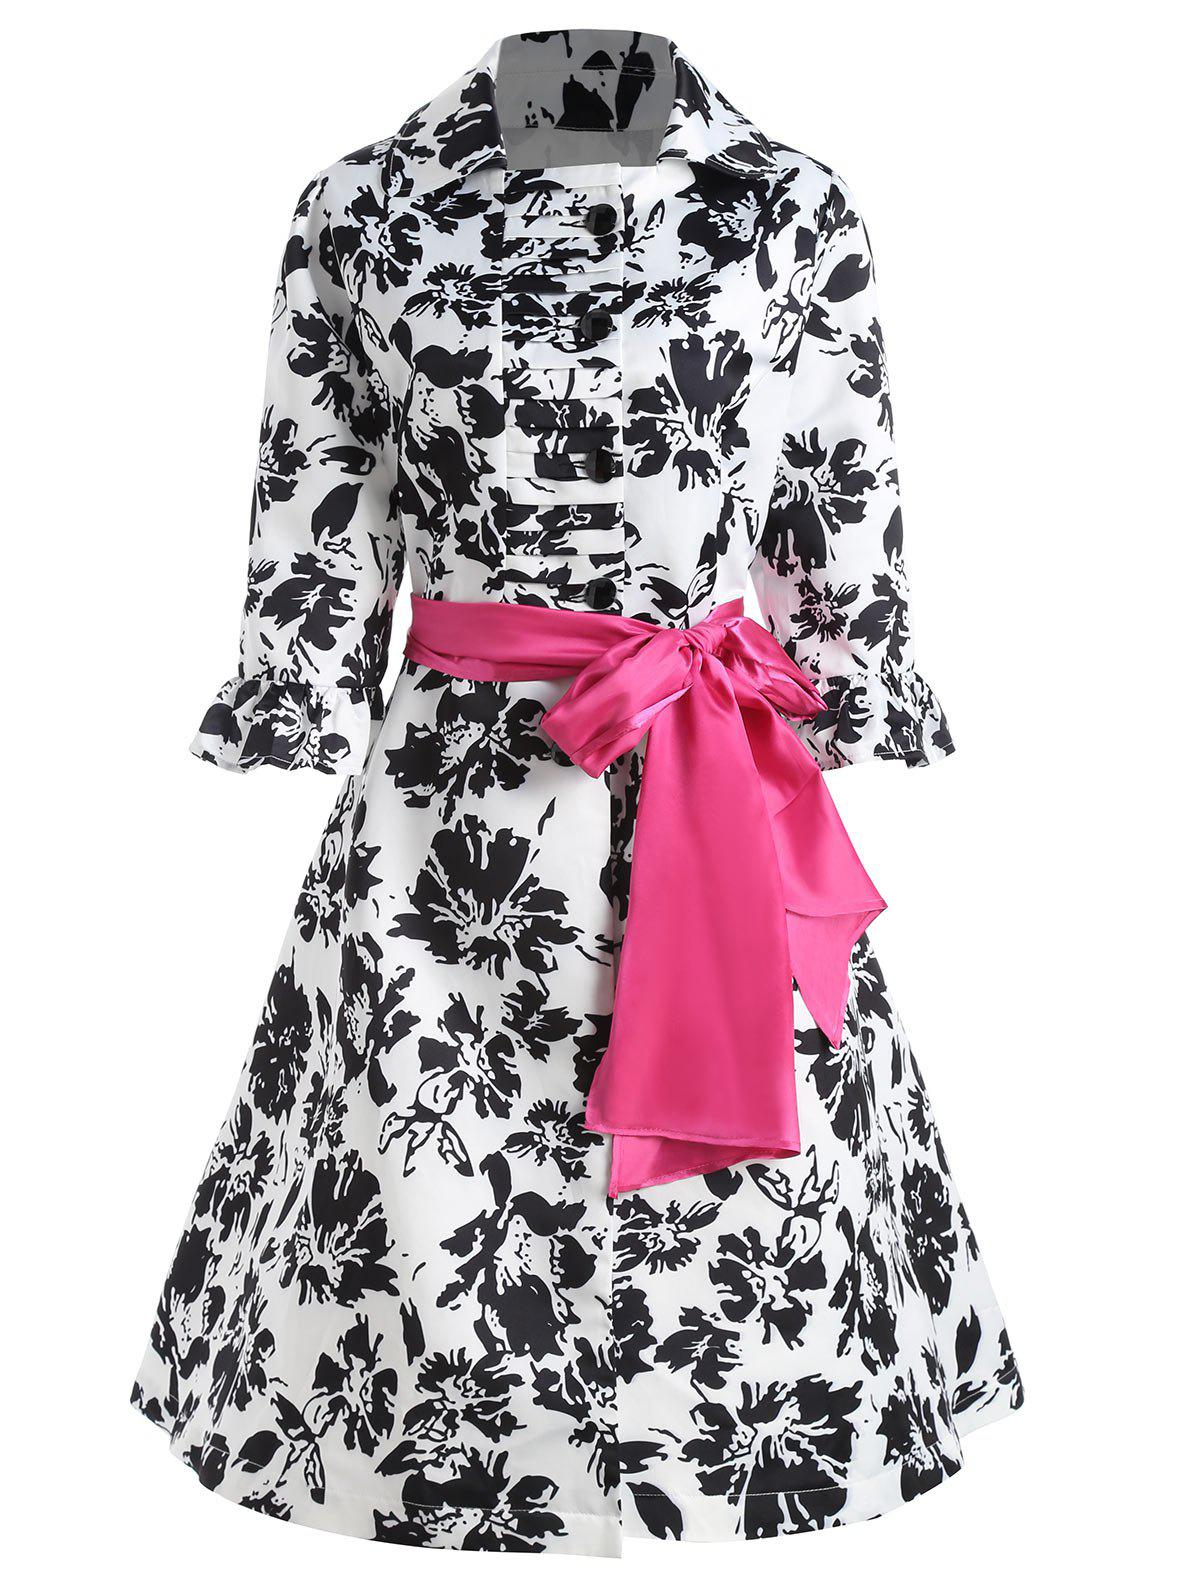 Bell Sleeve Belted Floral Printed Plus Size CoatWOMEN<br><br>Size: 4XL; Color: BLACK; Clothes Type: Trench; Material: Cotton,Polyester; Type: Slim; Shirt Length: Long; Sleeve Length: Three Quarter; Collar: Turn-down Collar; Pattern Type: Floral; Style: Fashion; Season: Fall,Spring; Weight: 0.7000kg; Package Contents: 1 x Coat  1 x Belt;